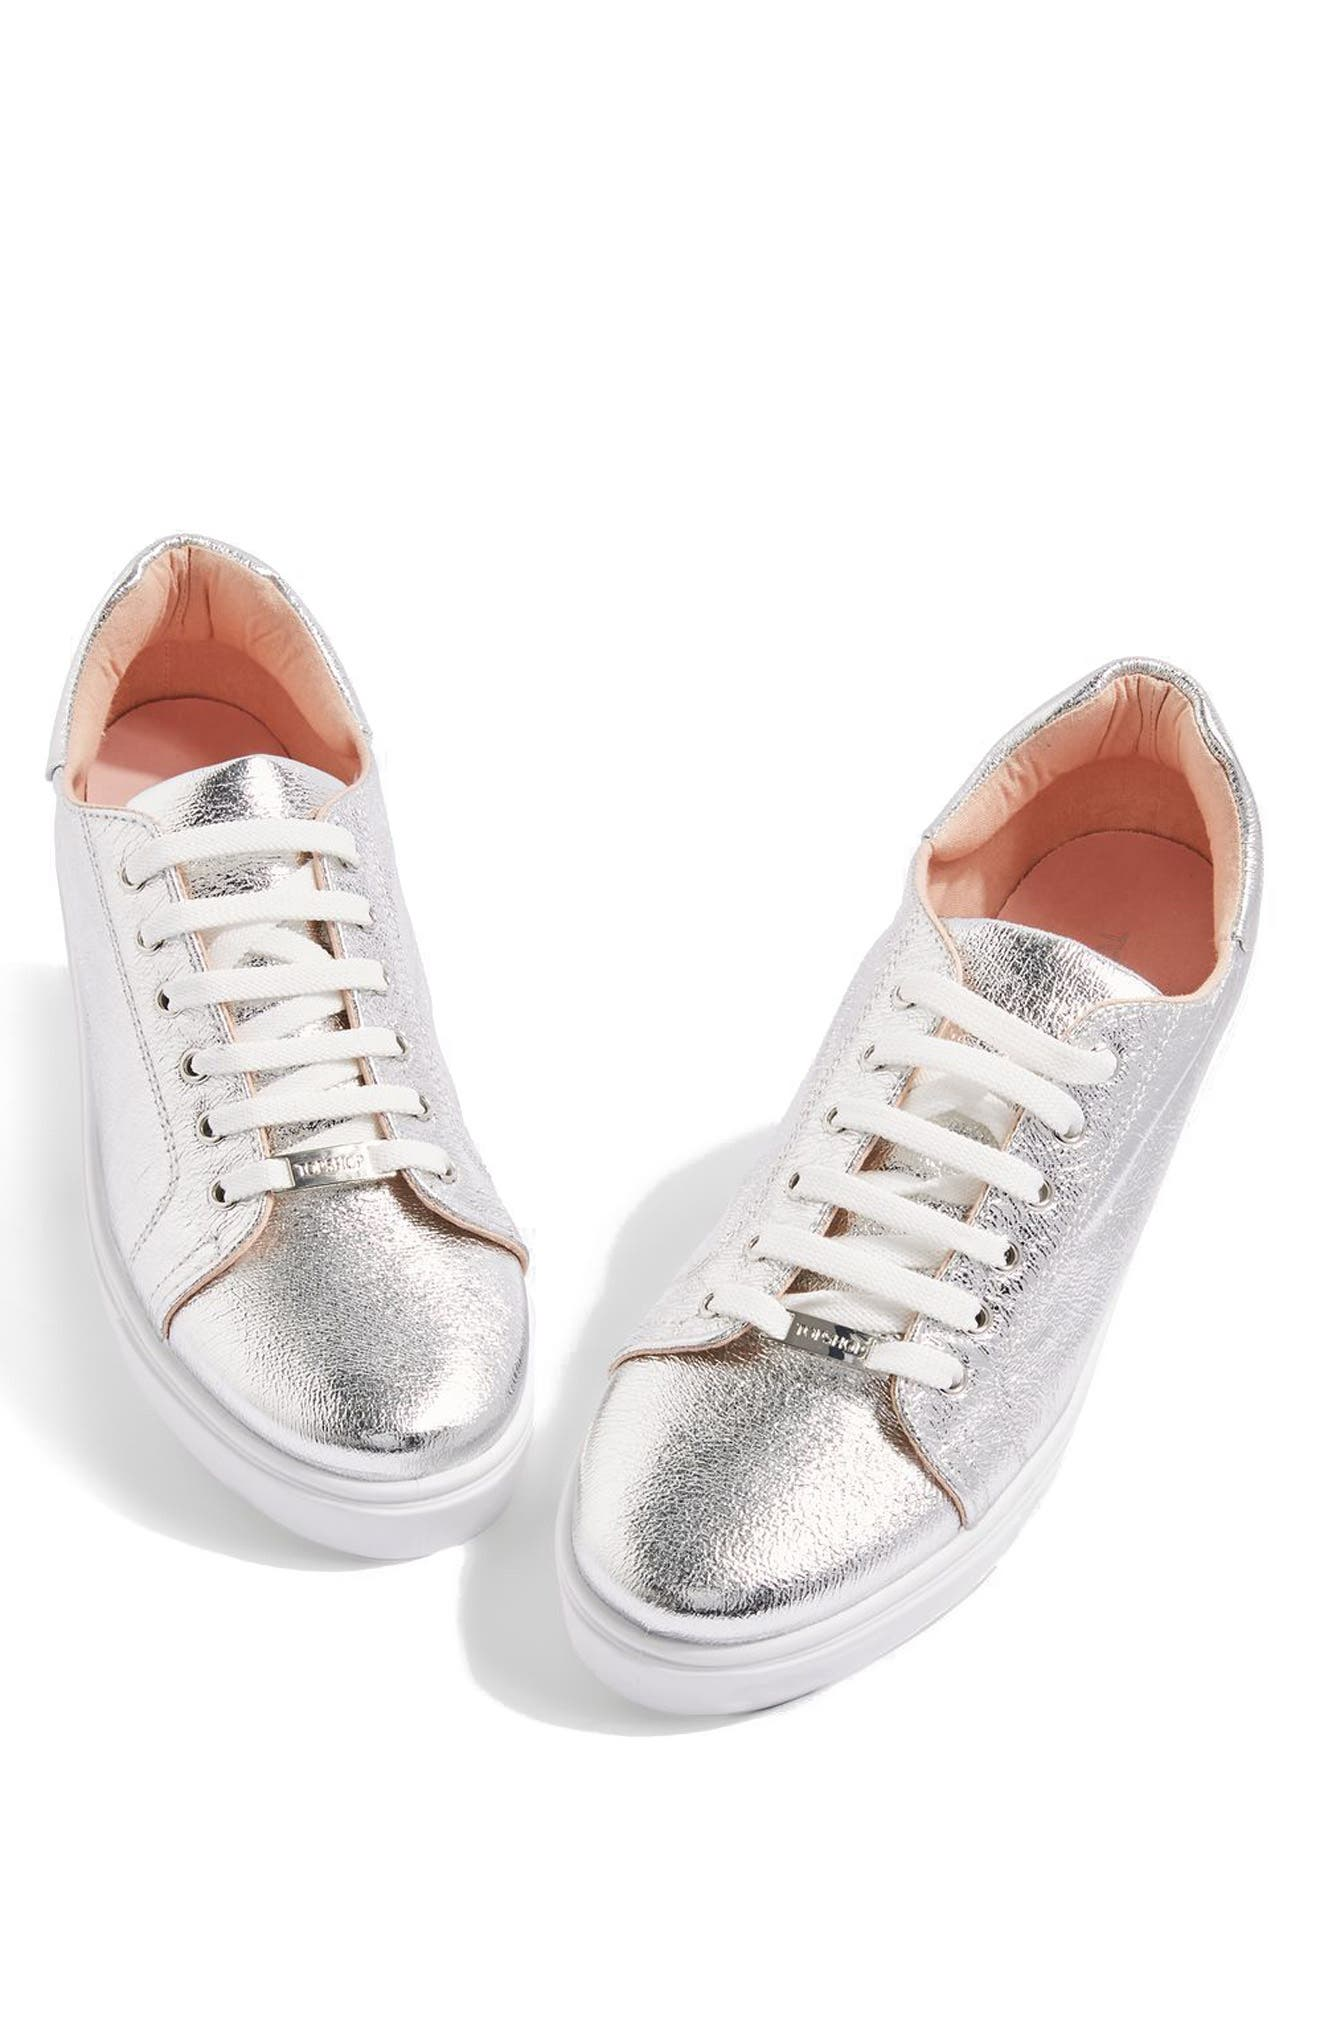 Cosmo Metallic Lace-Up Sneaker,                             Main thumbnail 1, color,                             Silver